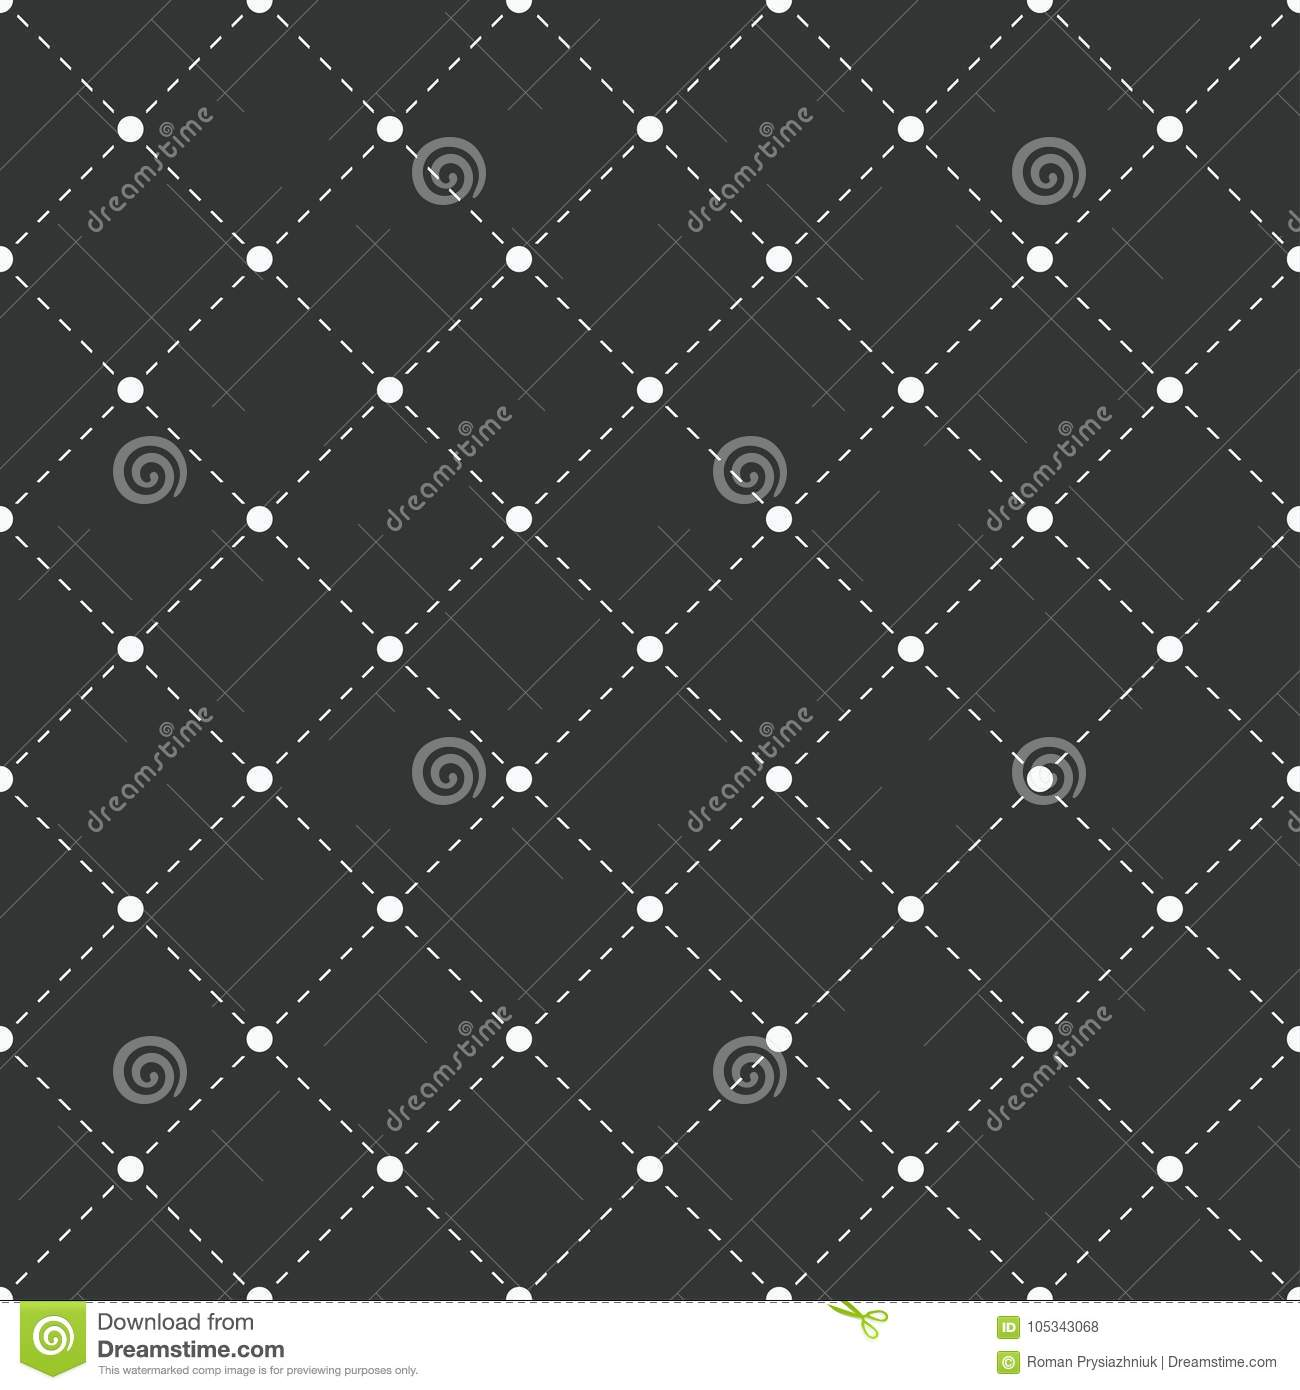 Geometric seamless pattern. White dots with dashed lines on black background. Vector illustration.